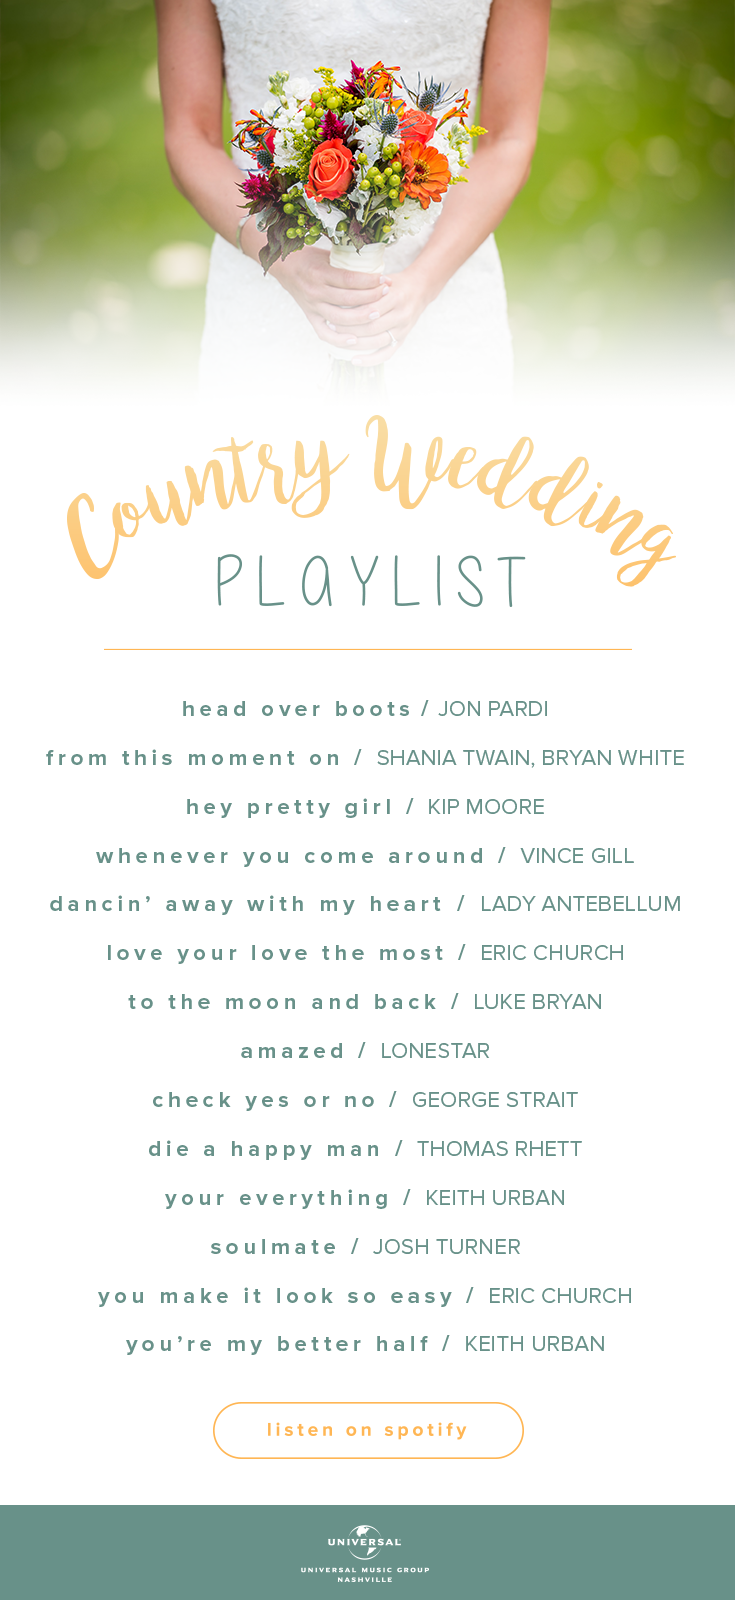 Pin By Umg Nashville On Wedding Songs Pinterest Wedding Songs